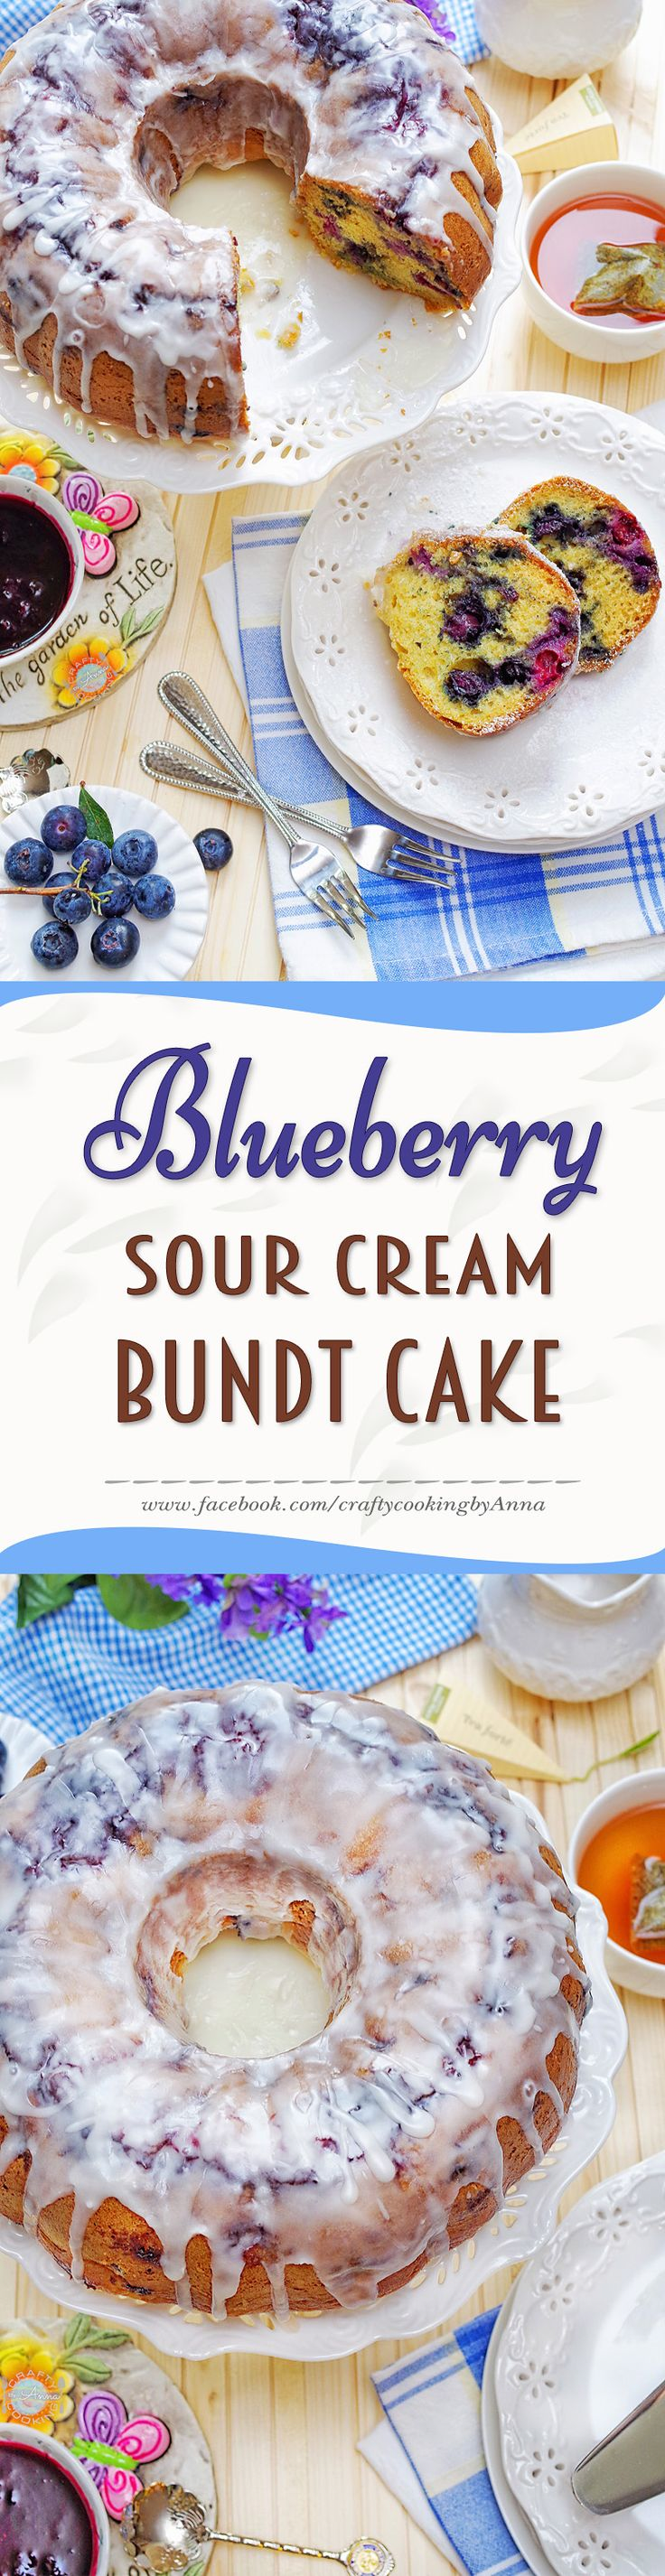 Blueberry Sour Cream Bundt Cake! #Blueberrylicious #Easy #Delicious #Everyday #Beautiful #Homecooking #Recipes #Dinner #Breakfast #Lunch #Kids #Foddie #Food #Fresh #Foodfollol #Low-Carb #Low-Cal #Yum #yummy #foodlover #tasty #foodheaven #Hungry #FollowMe #CraftyCookingByAnna If you like my recipes, please Follow Me - http://www.pinterest.com/annavil/ and https://instagram.com/craftycookingbyanna/ and Join Me -https://www.facebook.com/craftycookingbyAnna Thank you!